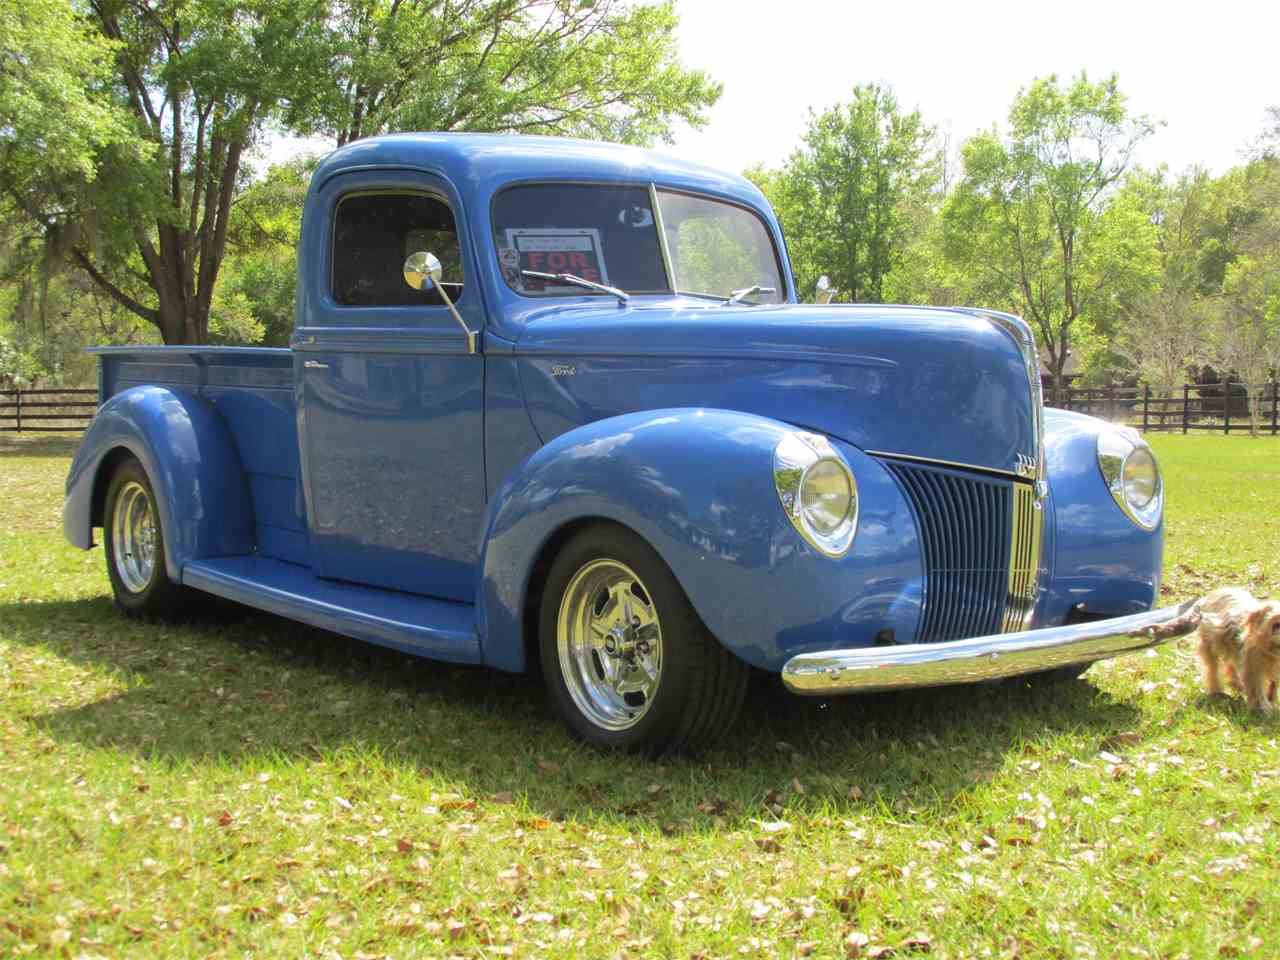 1940 Ford Pickup for Sale   ClassicCars.com   CC-964802